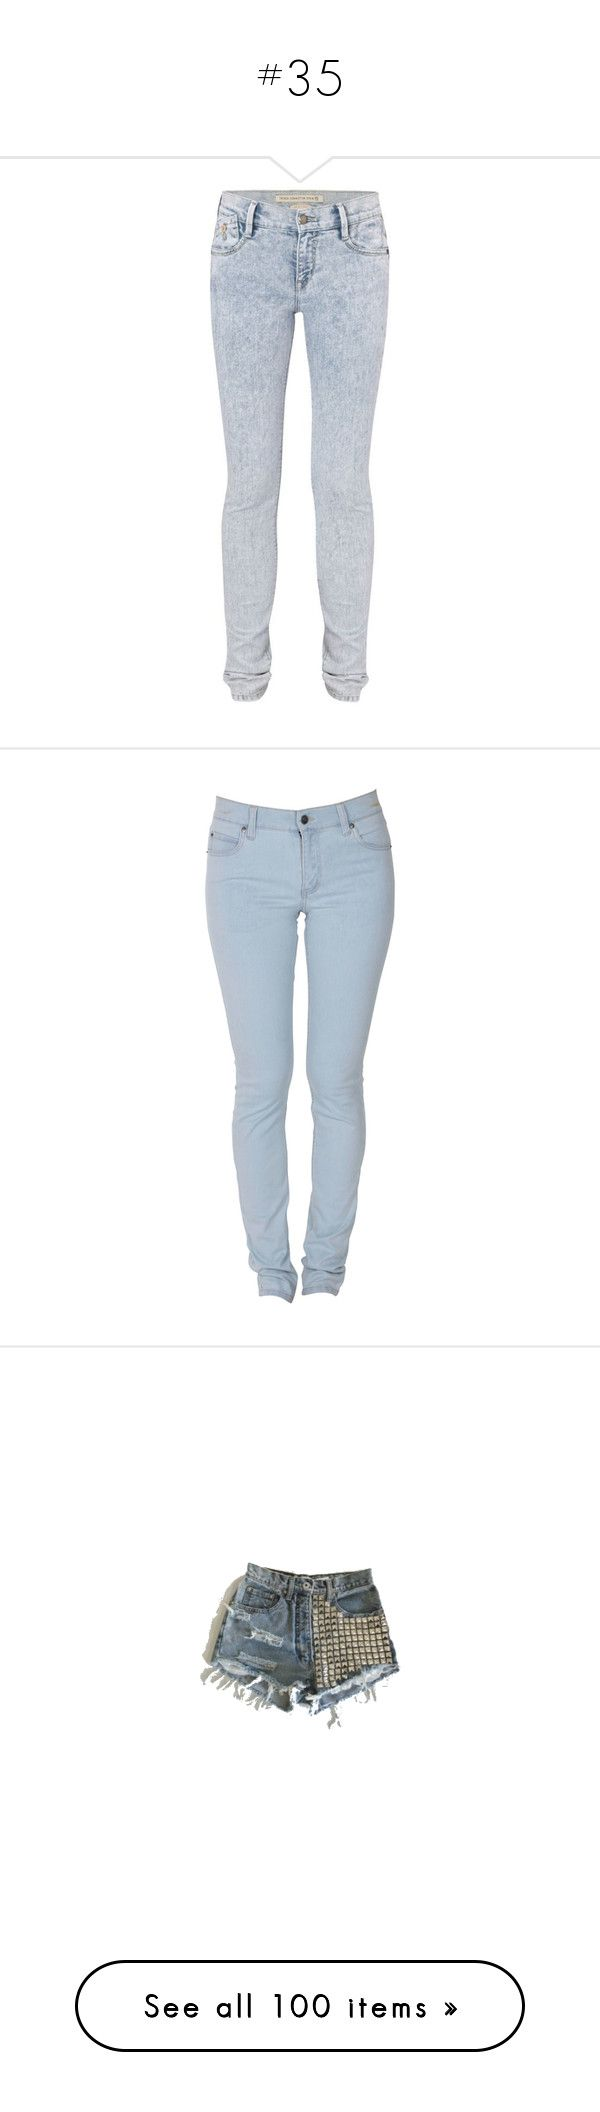 """#35"" by jessie-swg ❤ liked on Polyvore featuring jeans, pants, bottoms, pantalones, calças, women, zipper skinny jeans, acid wash jeans, zipper fly jeans and french connection"